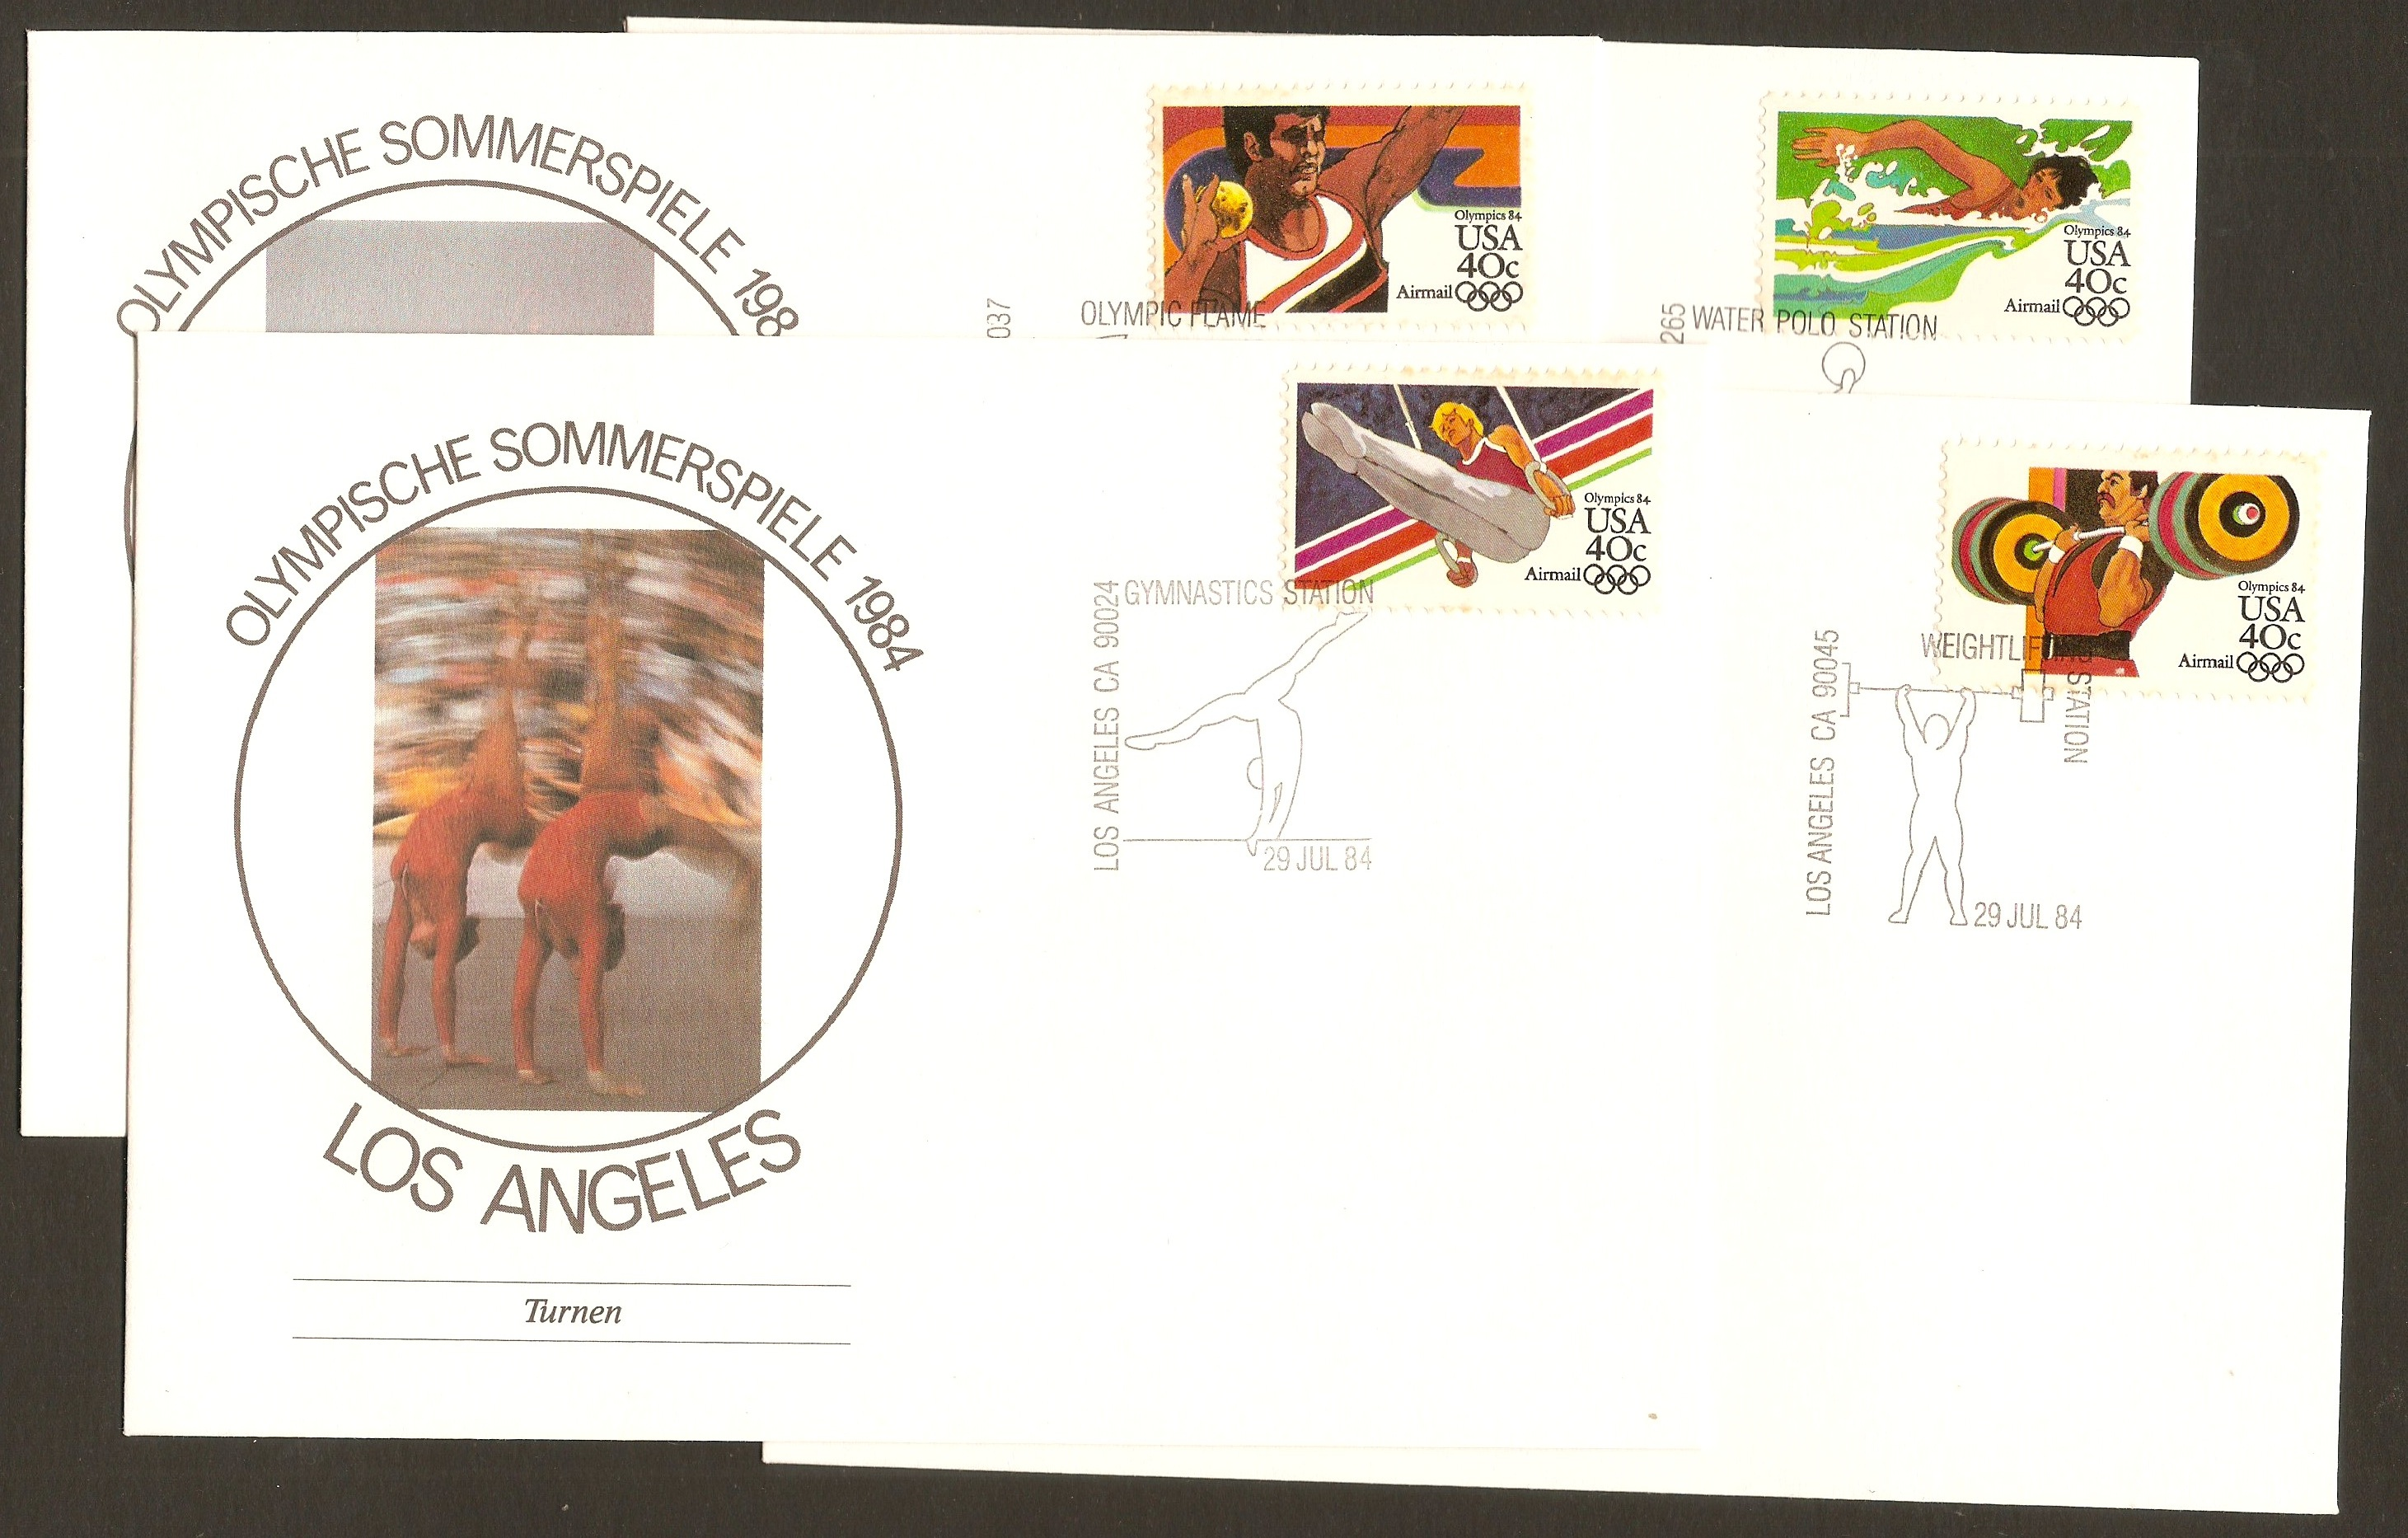 United States 1983 Los Angeles Olympics Souvenir Covers.